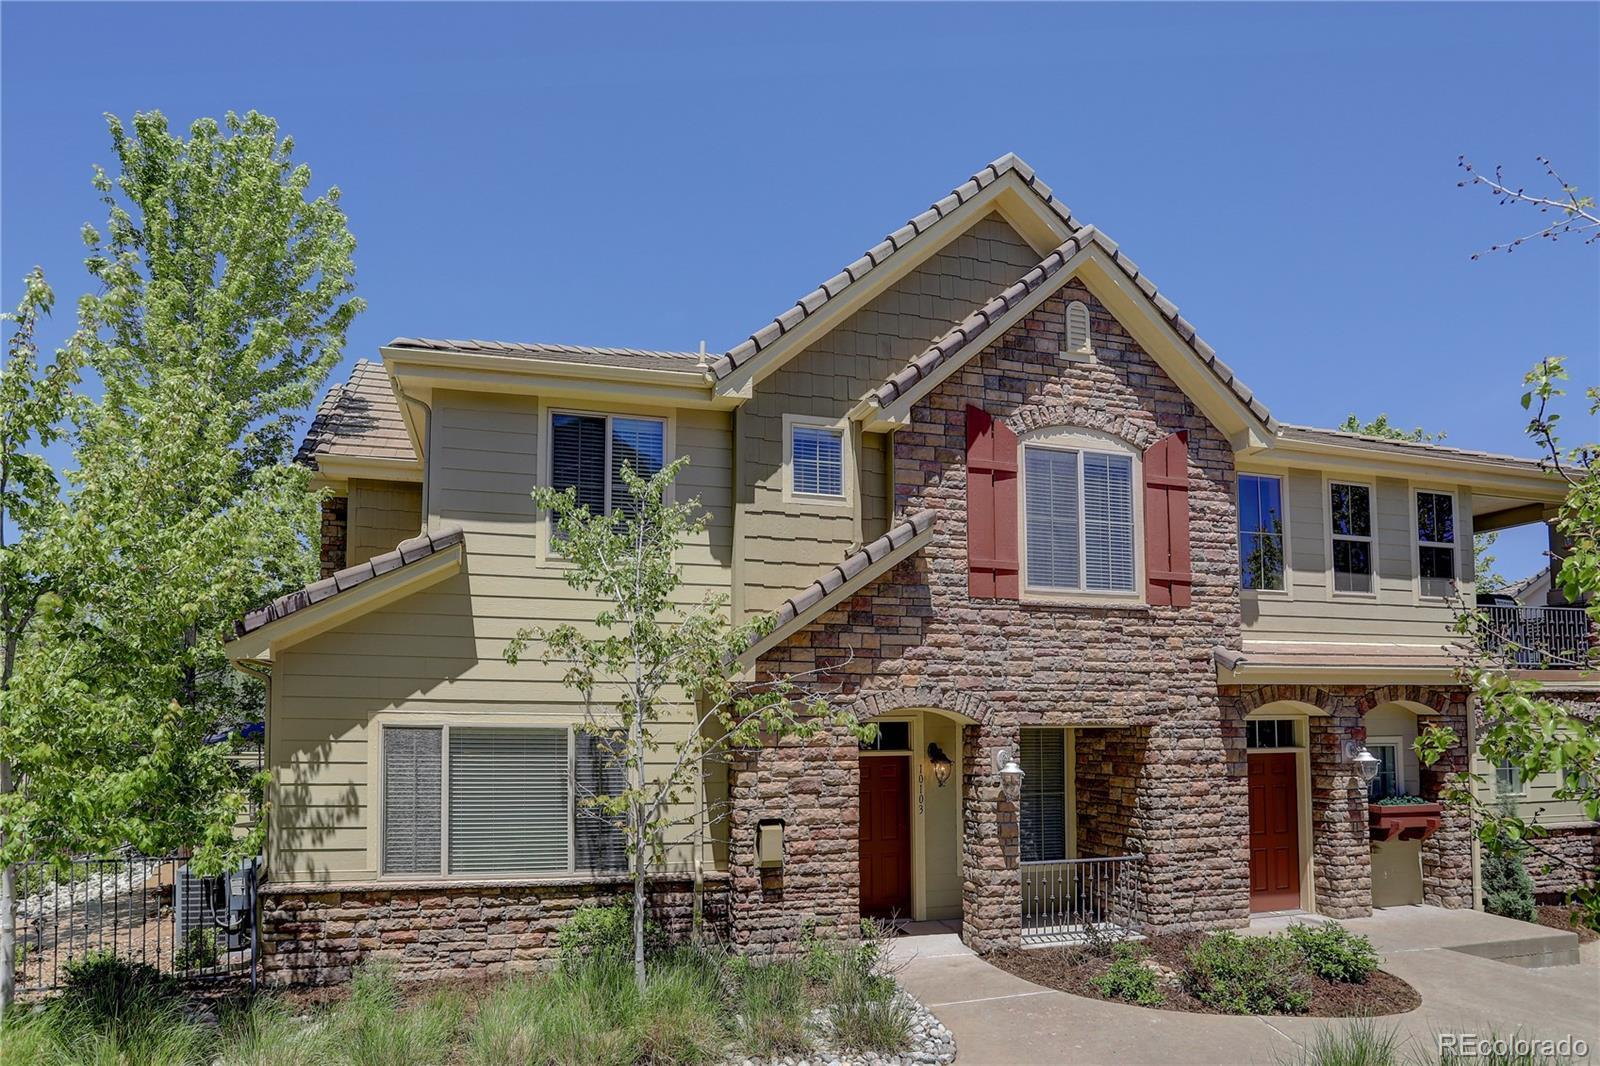 10103 Bluffmont Lane, Lone Tree, CO 80124 - #: 3426469